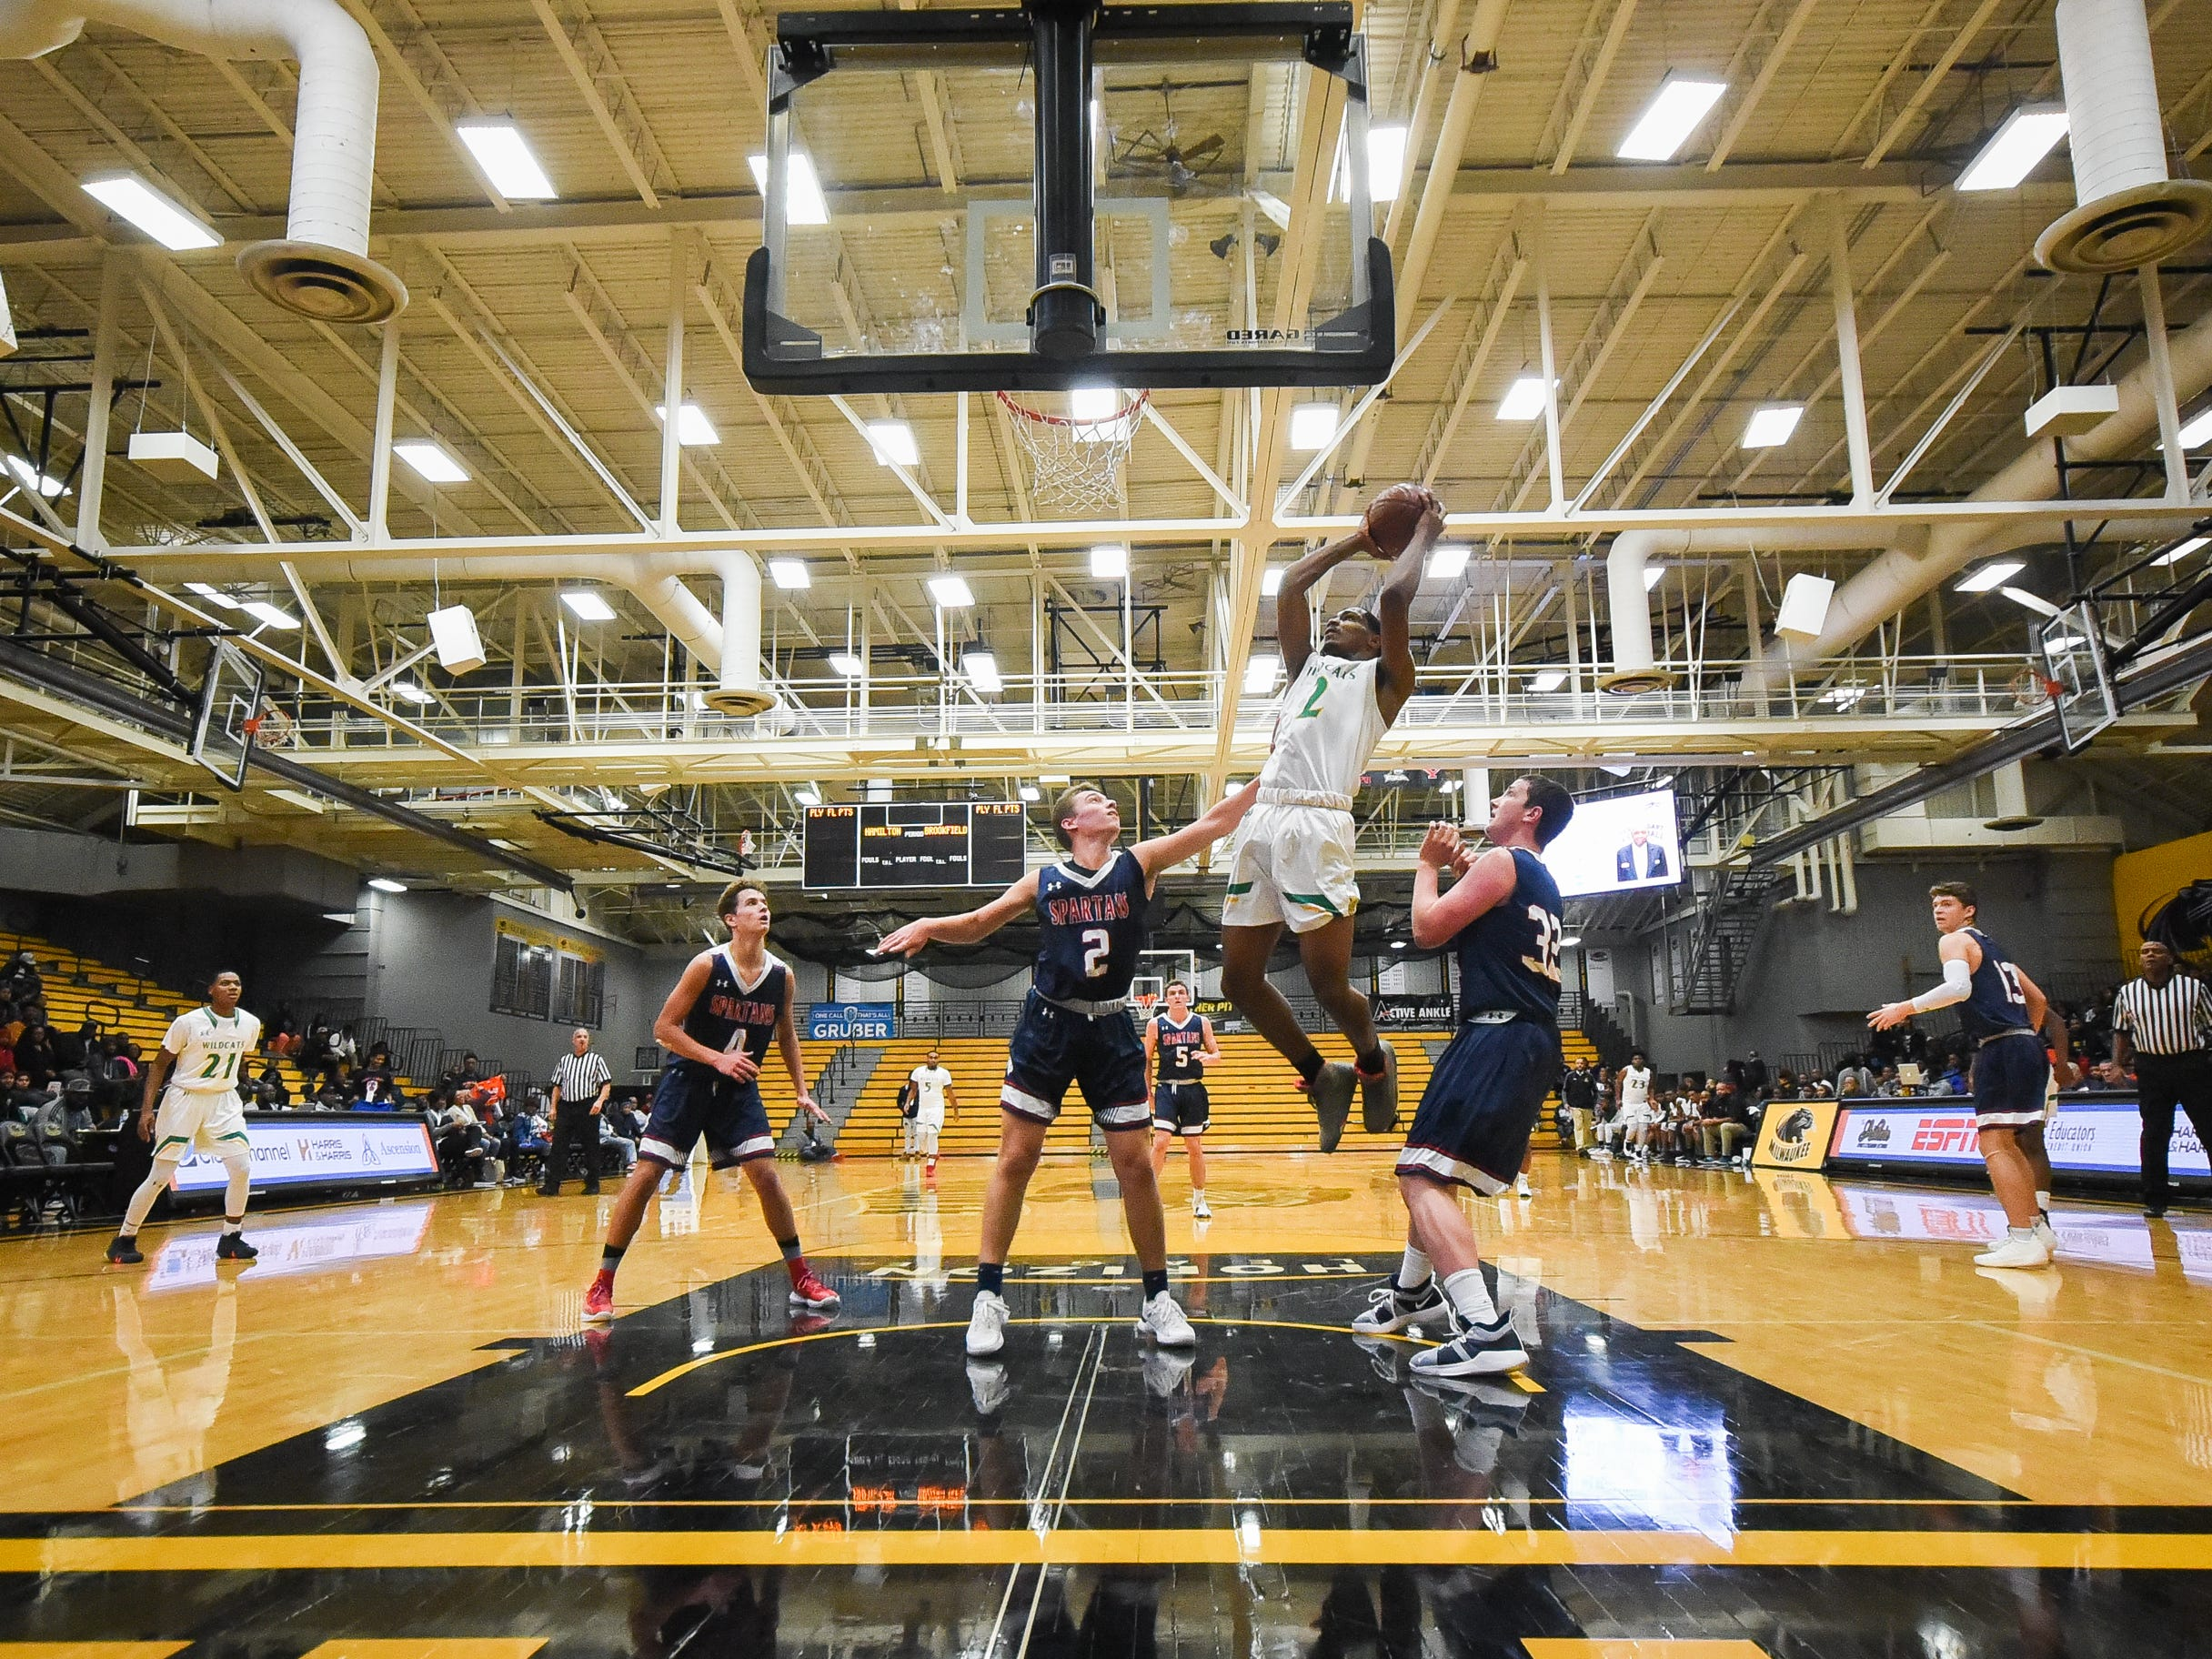 Milwaukee Hamilton sophomore forward Antoine Taylor goes up for a shot between Brookfield East defenders Micheal Poker (2) and Riley LeTourneau in the Fresh Coast Classic high school basketball showcase Saturday, November 24, 2018, at UW-Milwaukee's Klotsche Center.